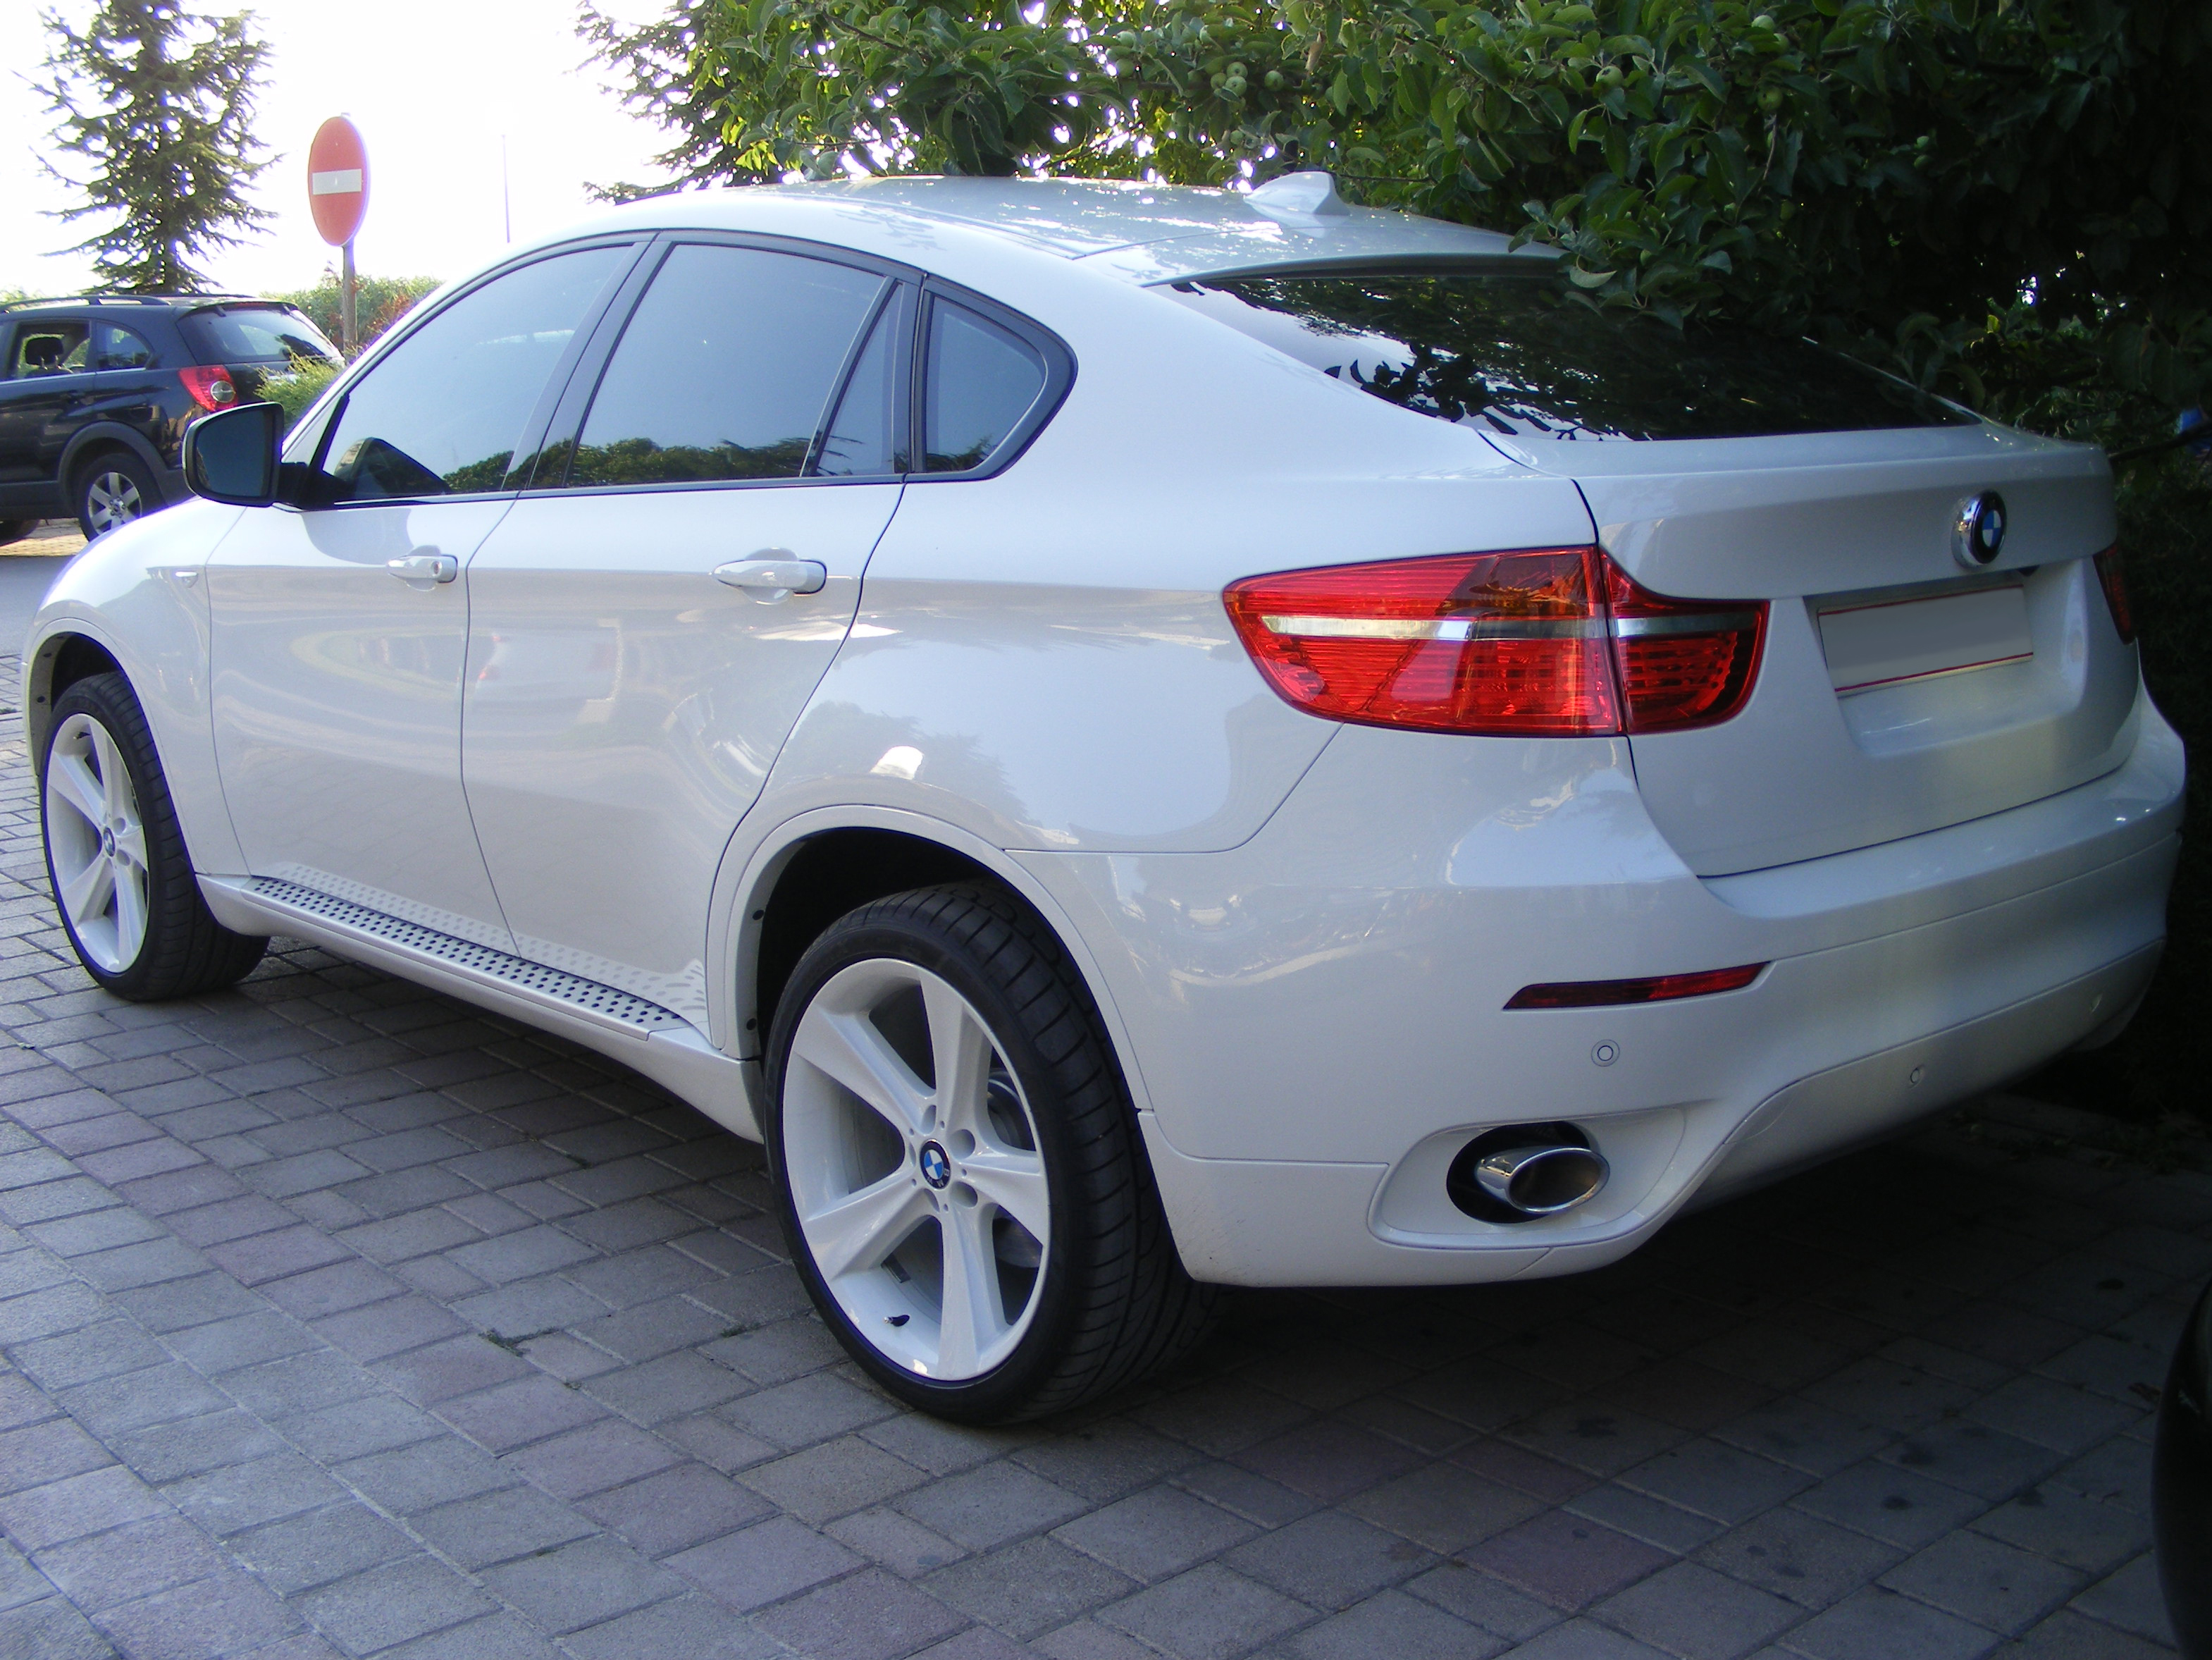 Bmw X6 Wikipedia Wolna Encyklopedia